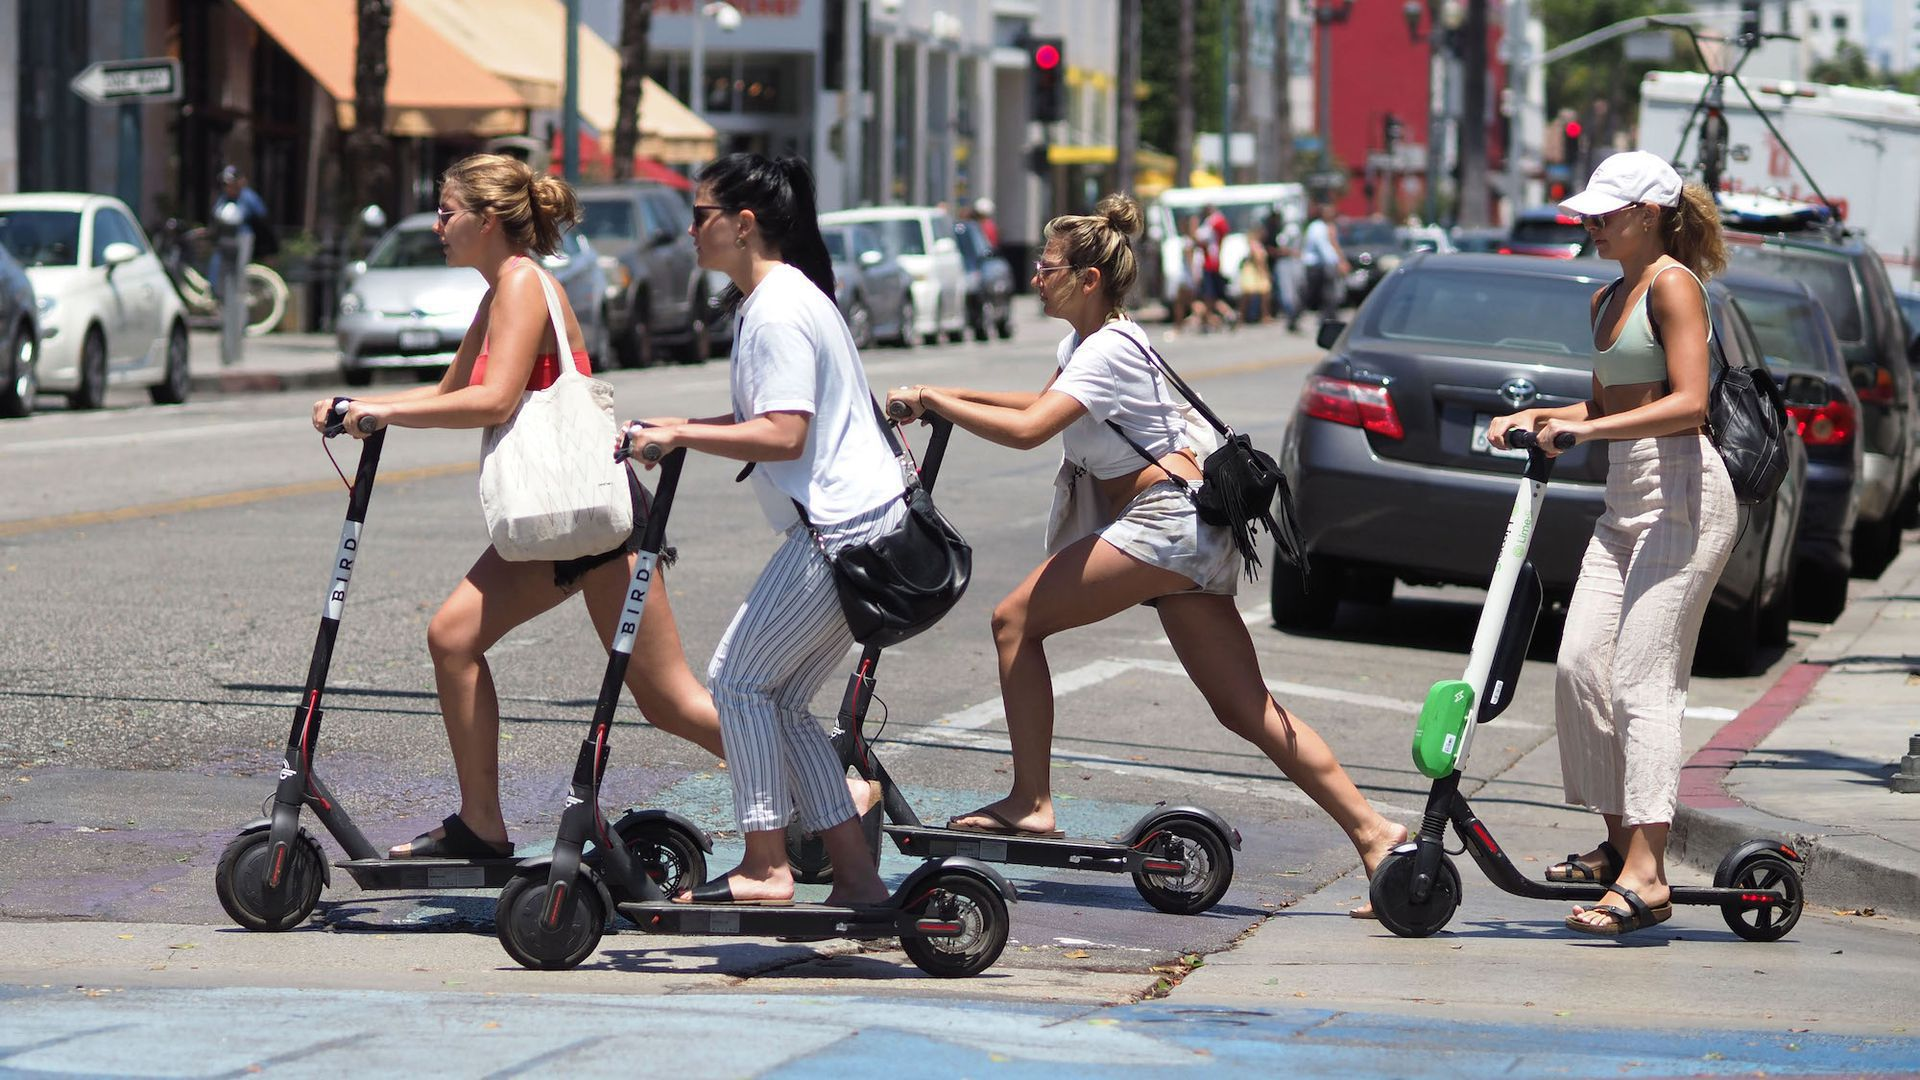 Women riding electric scooters